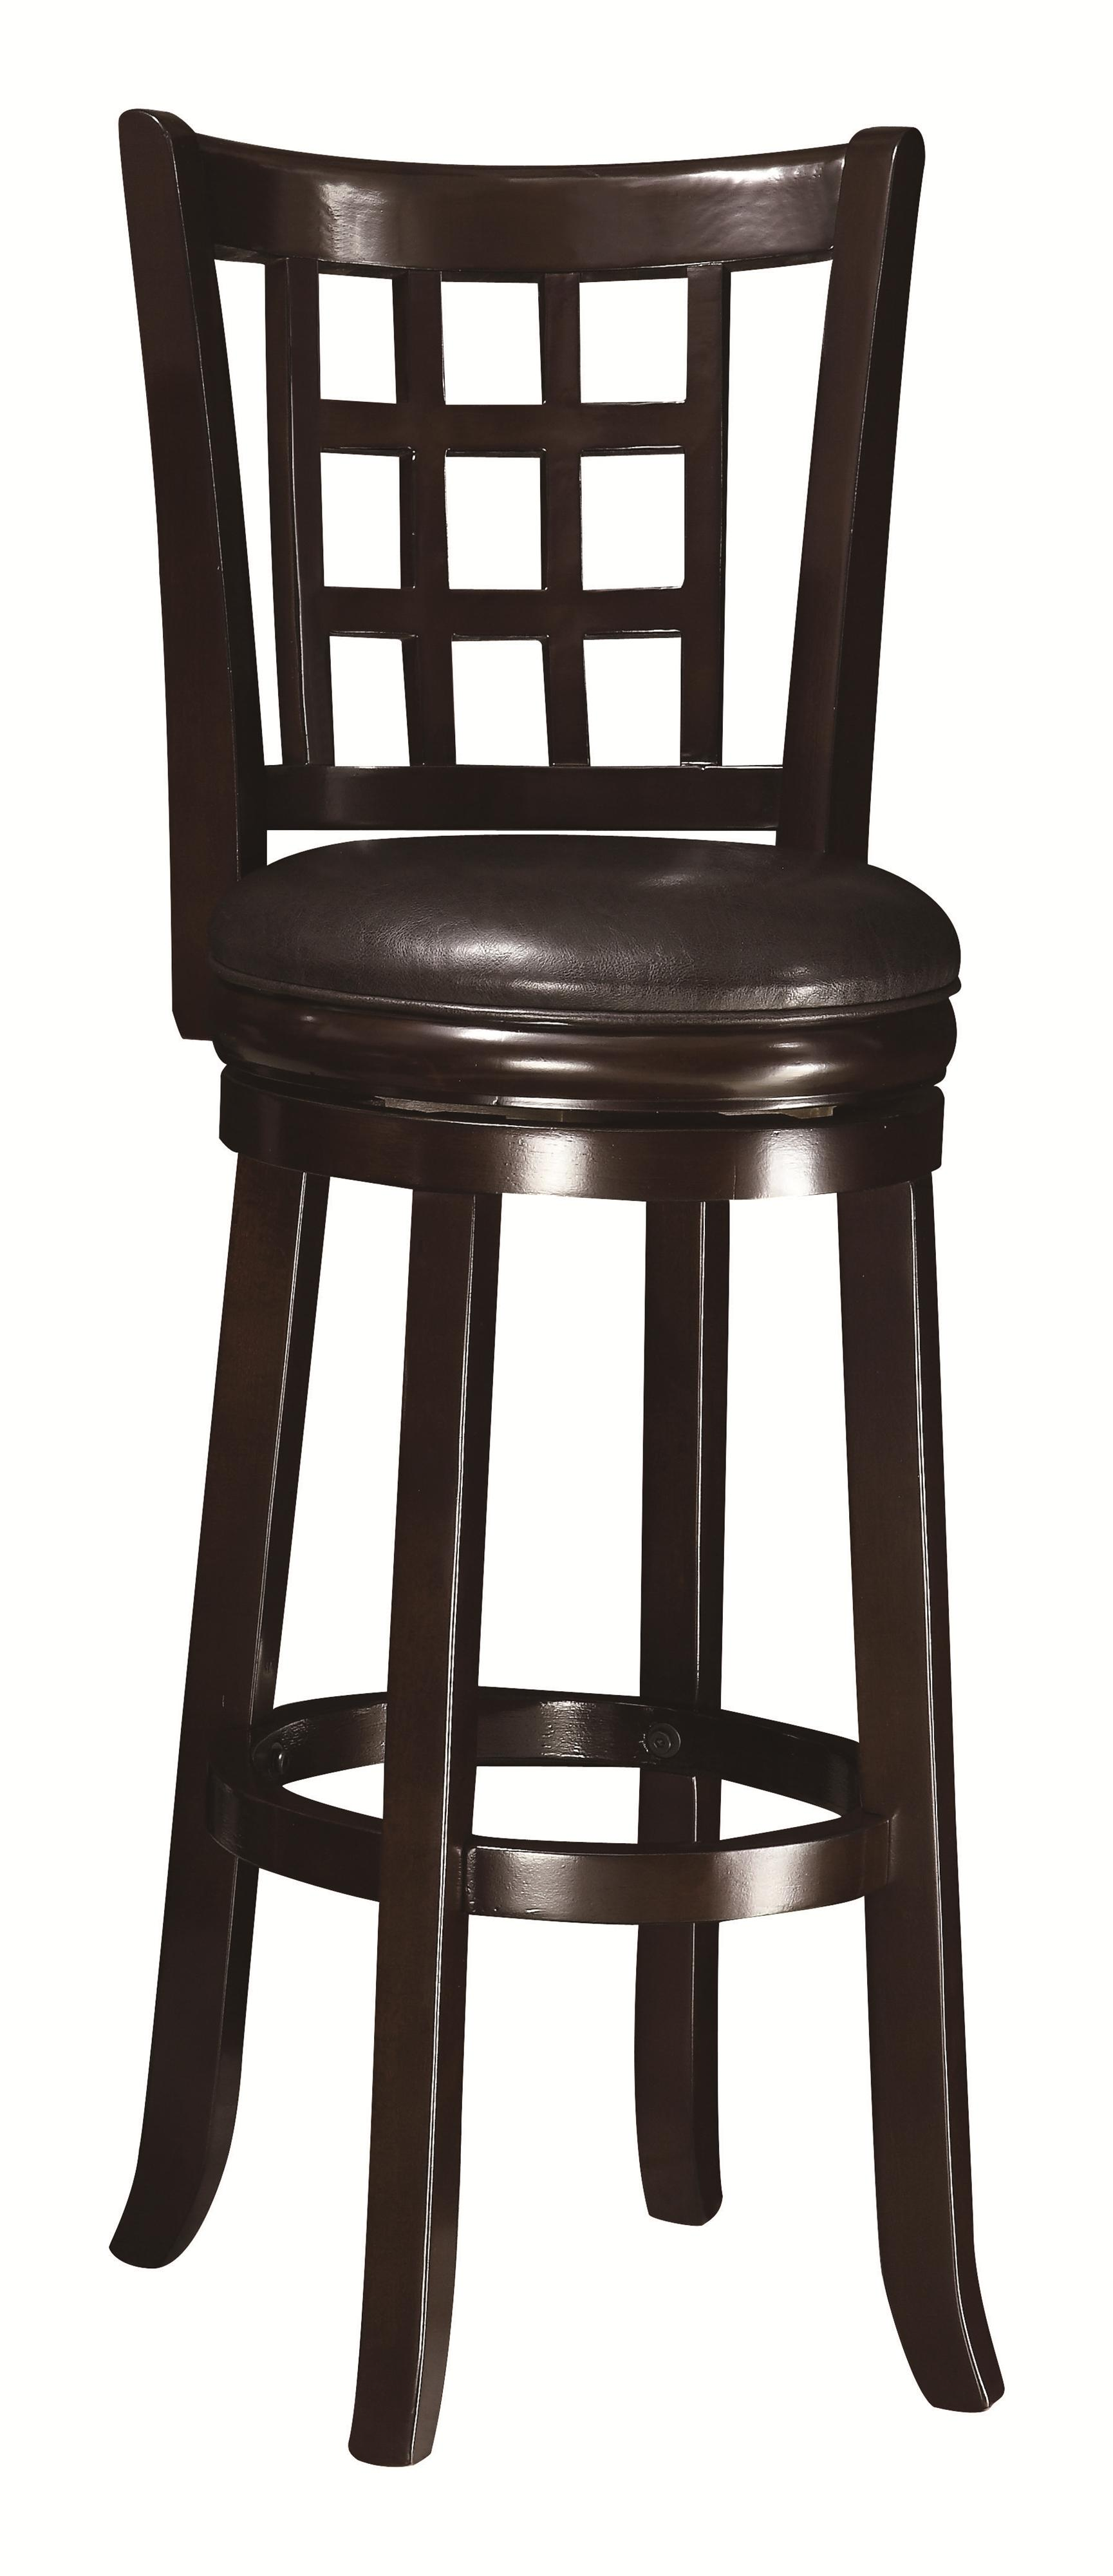 """Coaster Dining Chairs and Bar Stools 29""""H Bar Stool - Item Number: 102650"""